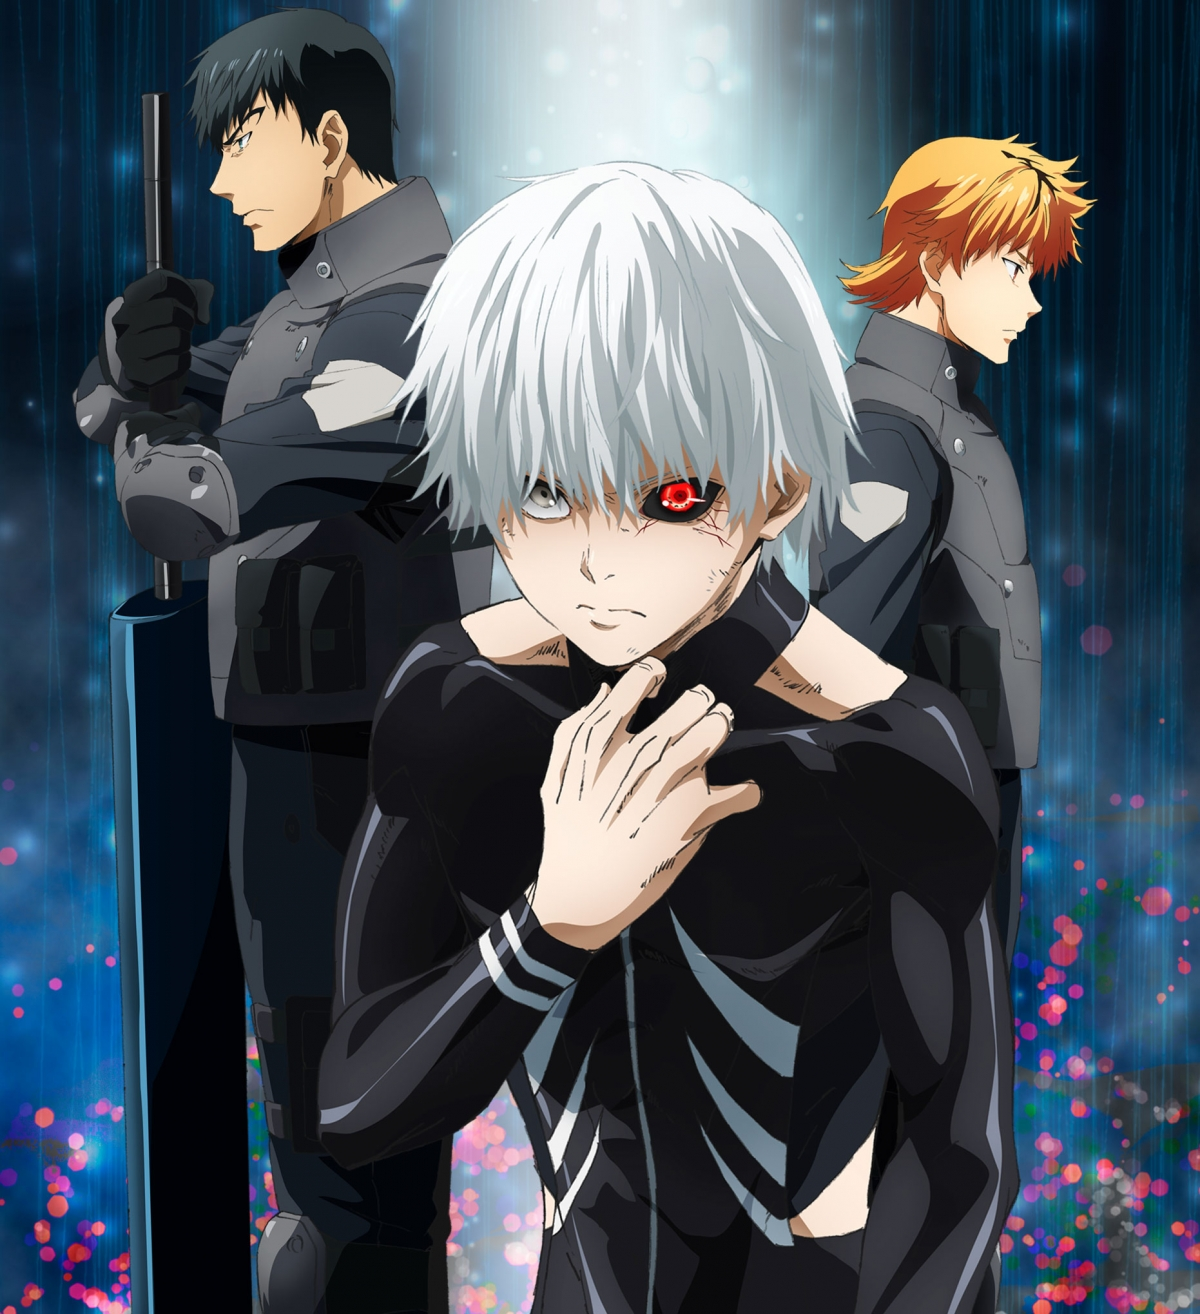 \'Tokyo Ghoul\' Season 3 Release Date News: Is A Third